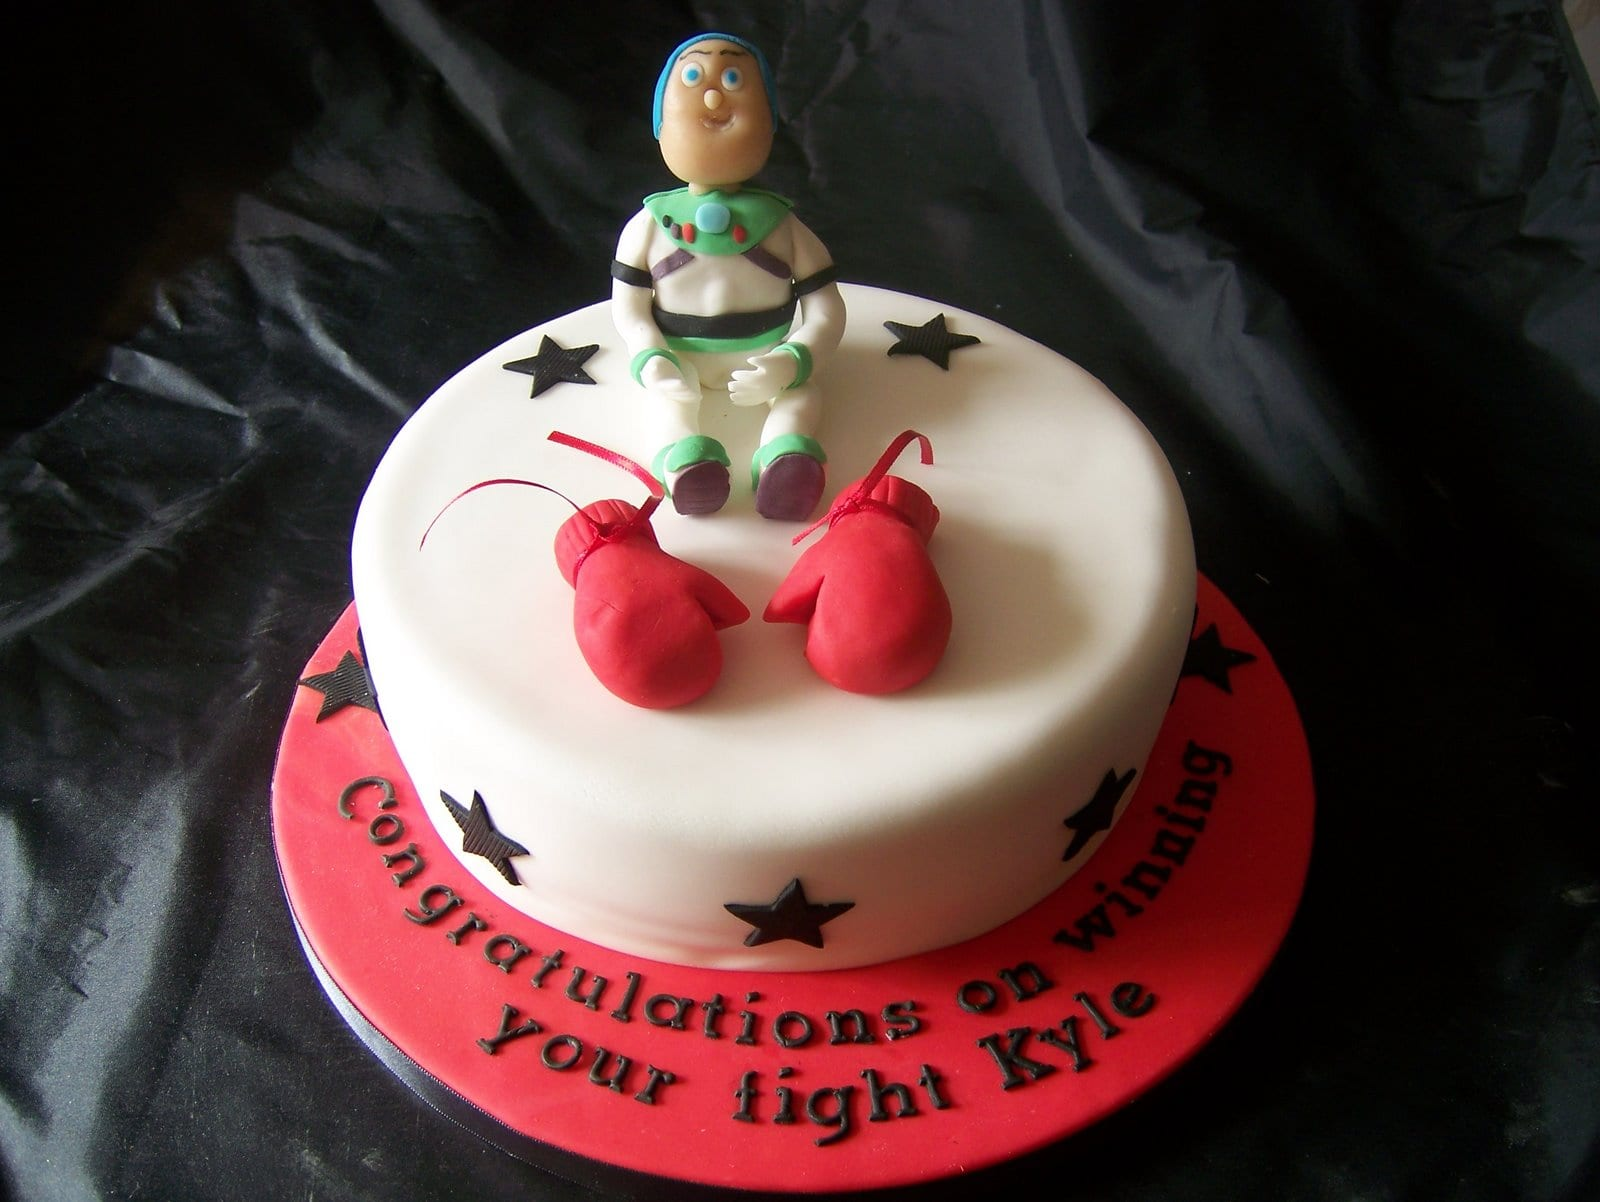 I am Back! Buzz Lightyear Celebration Cake